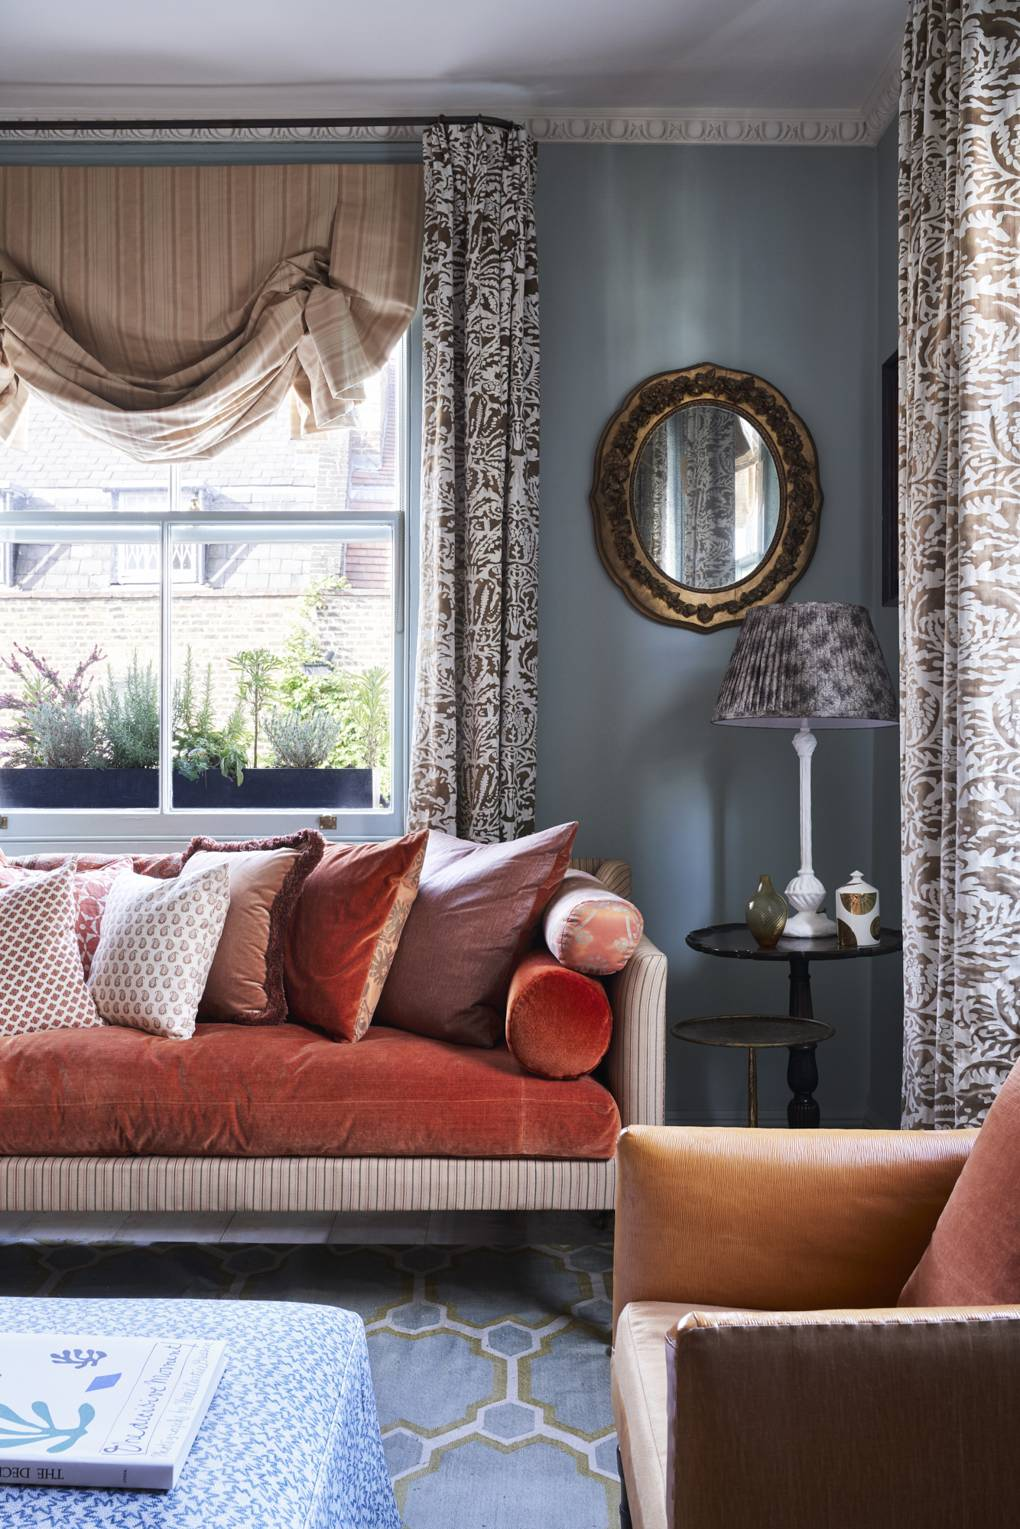 How Tara Craig has made a small space into a magnificent London flat